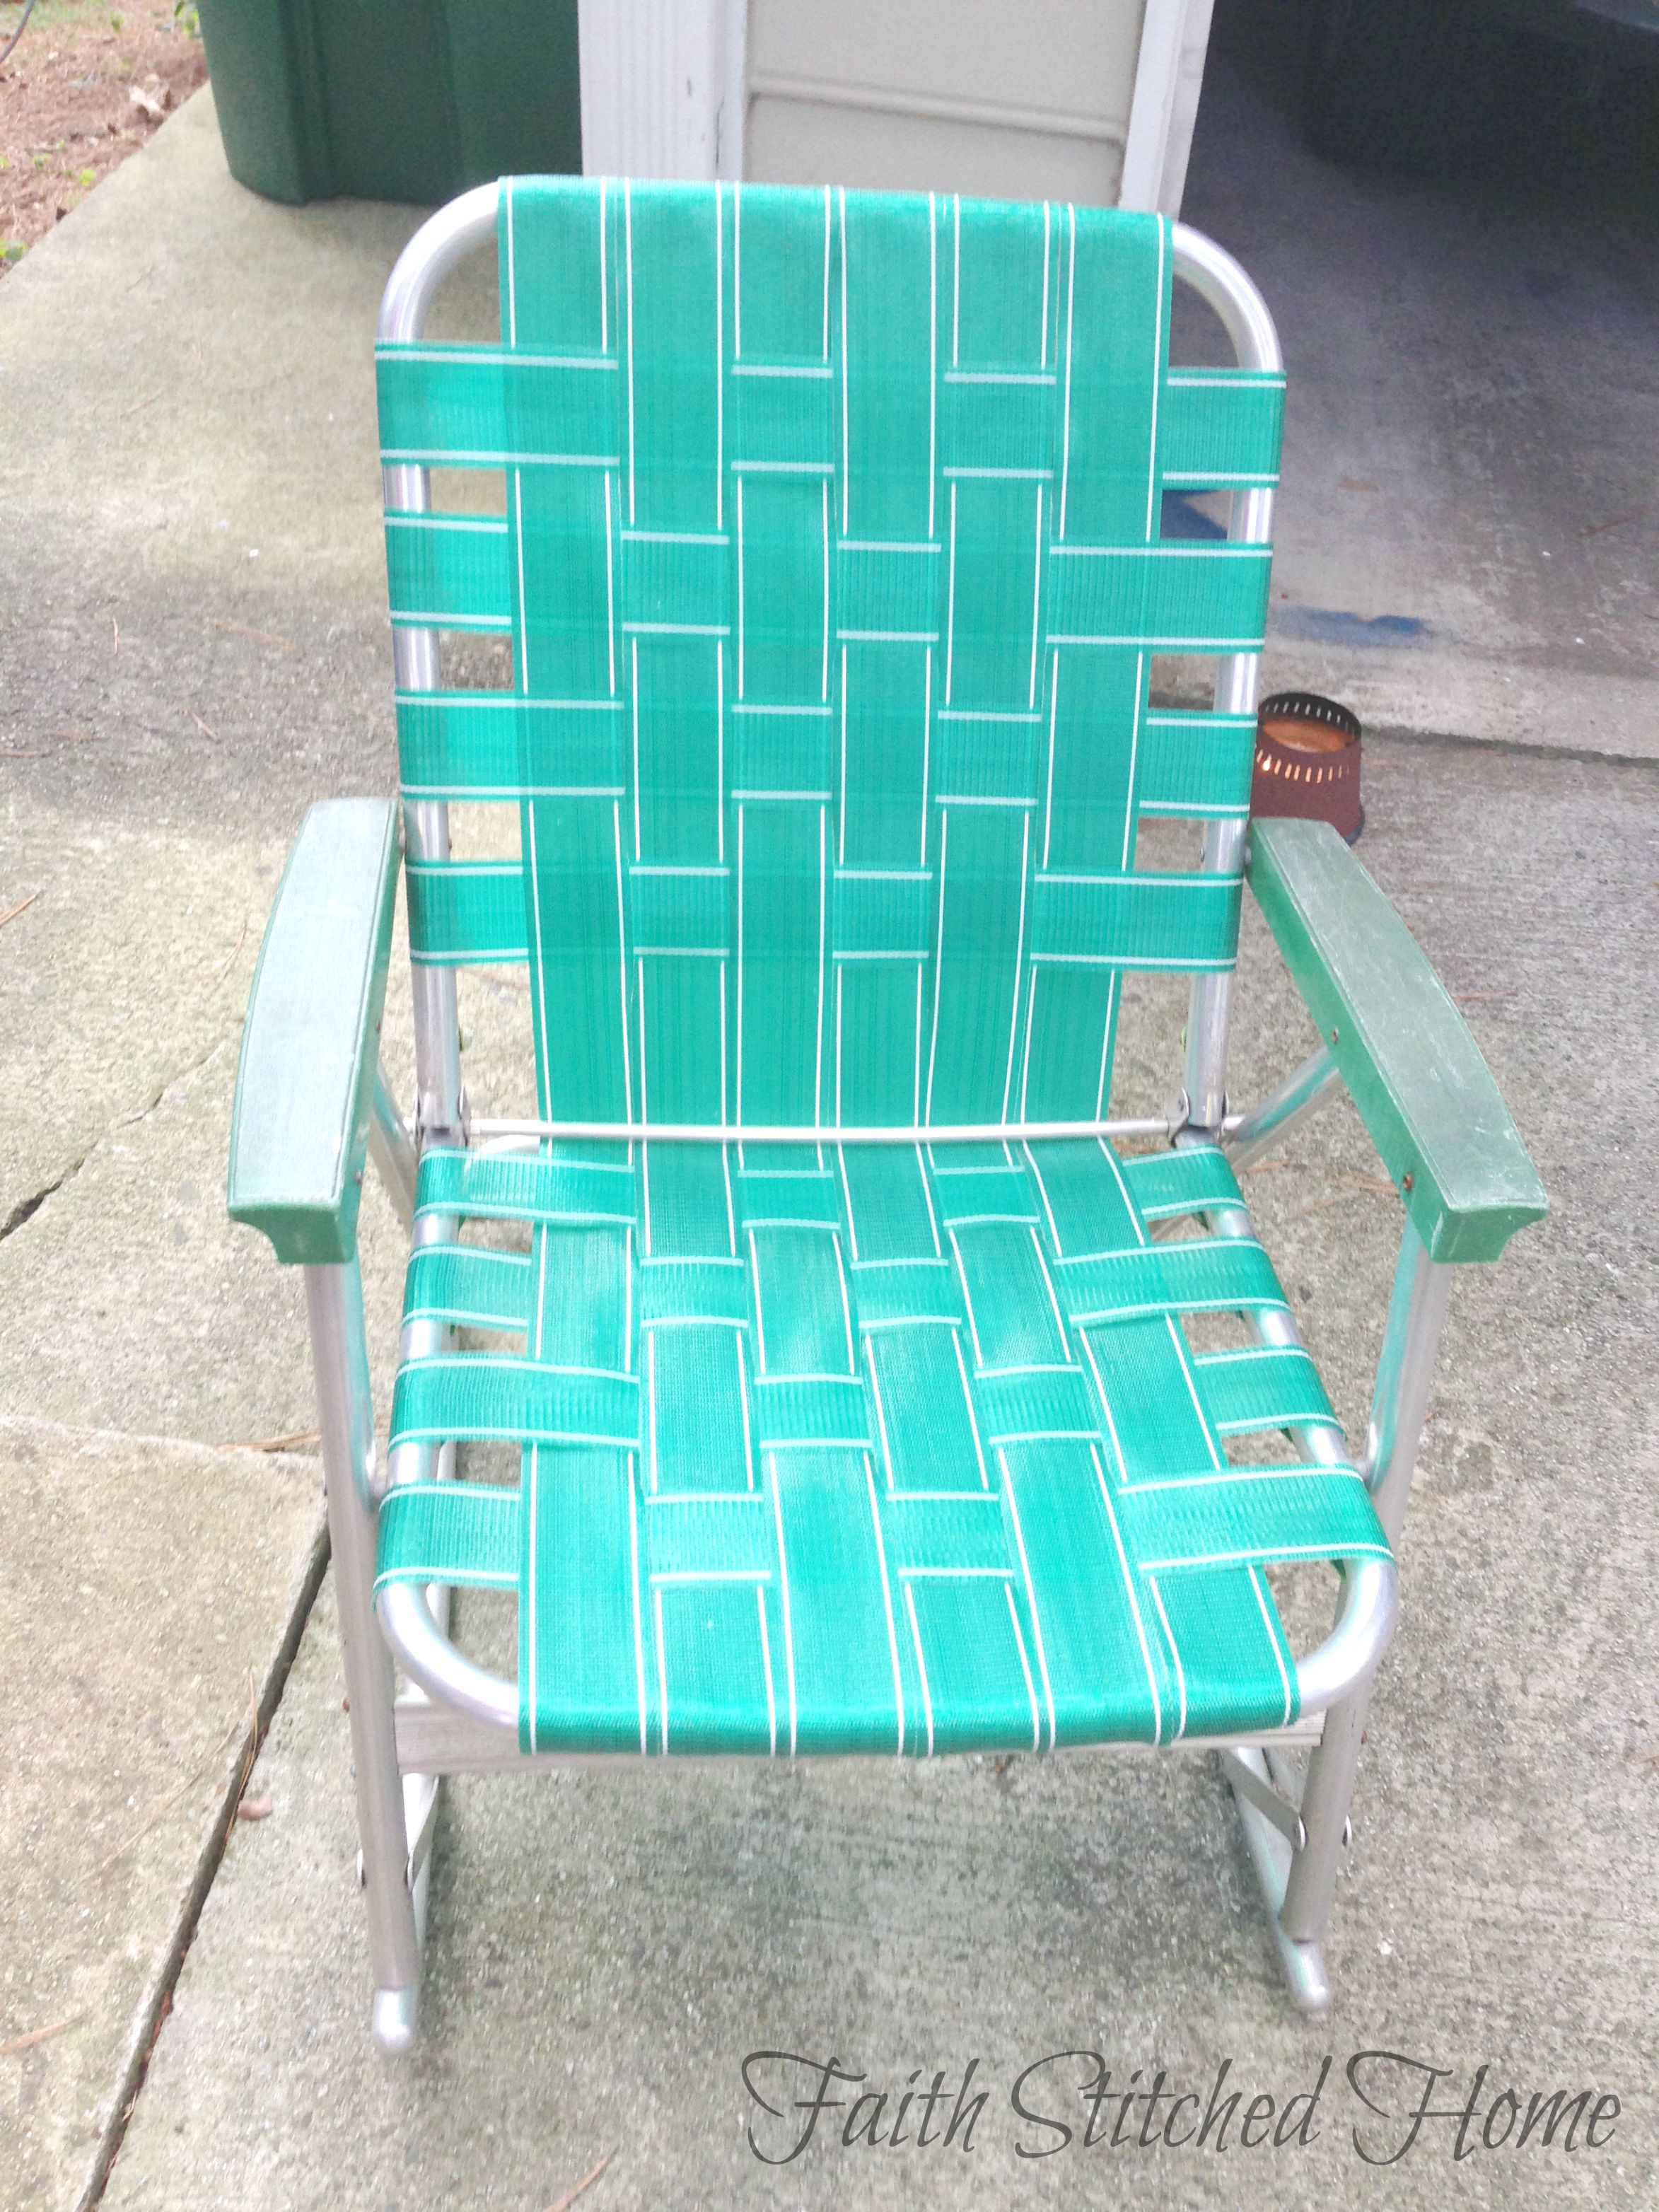 Vintage webbed lawn chair & Repairing a Vintage Webbed Lawn Chair | Faith Stitched Home